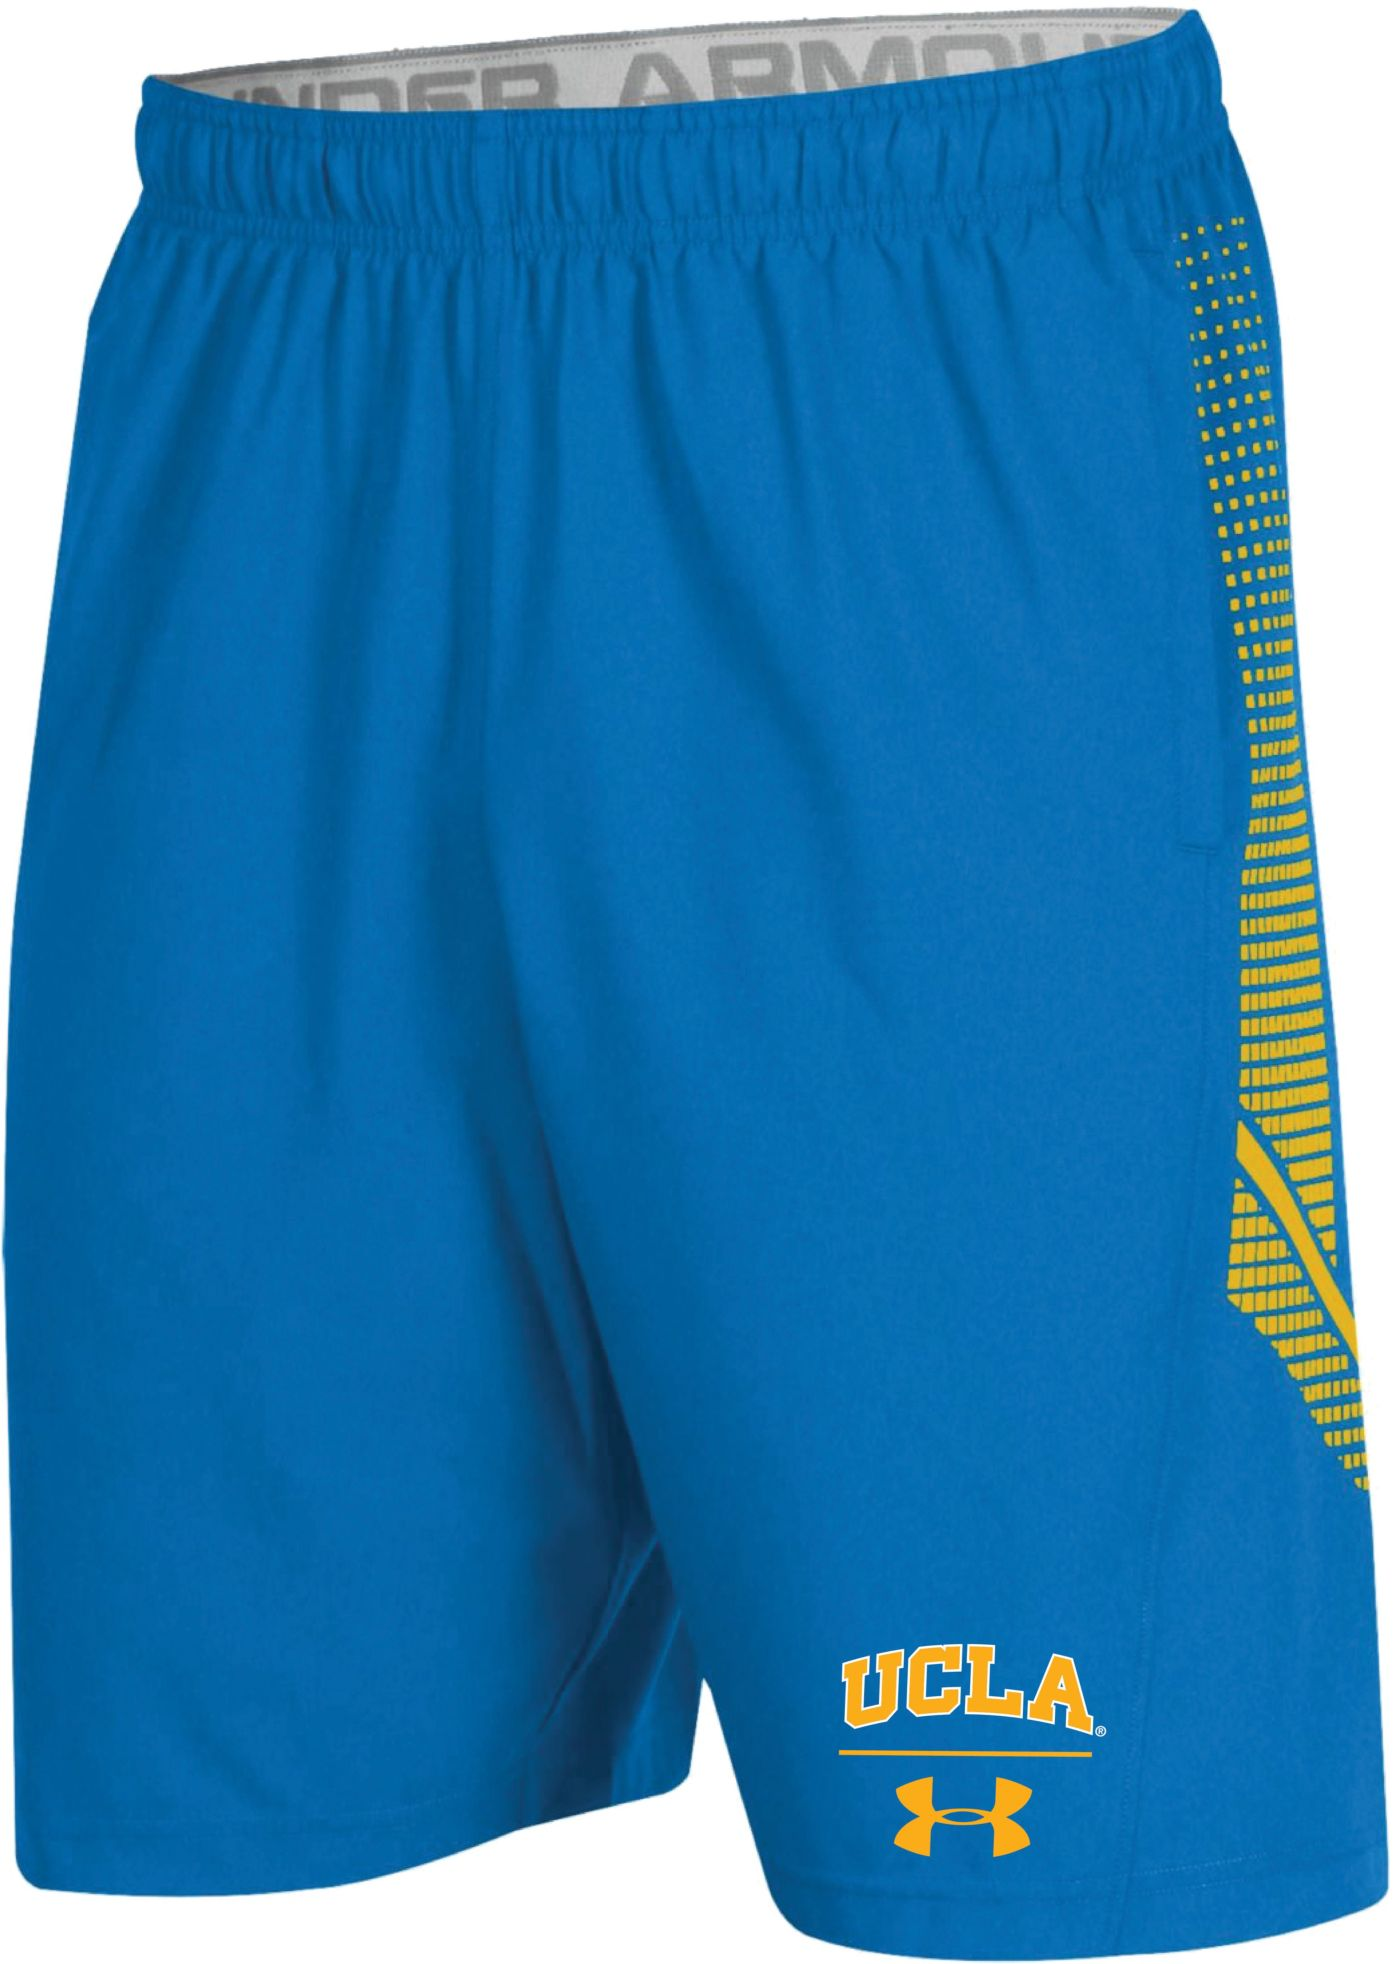 Under Armour Men's UCLA Bruins True Blue Sideline Pinnacle Shorts